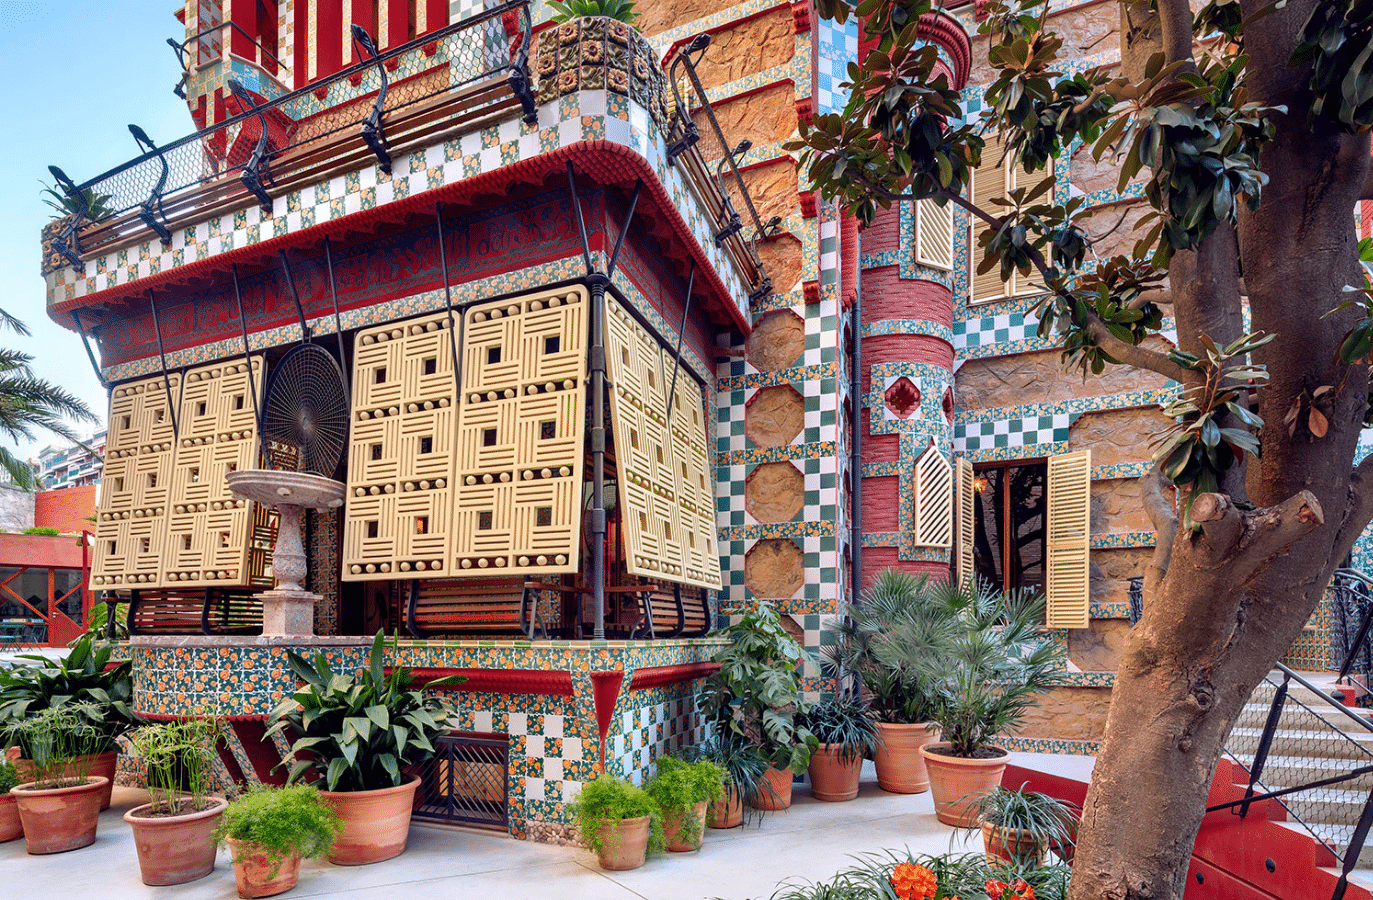 Casa Vicens Gaudí Gaudí S First House In Barcelona